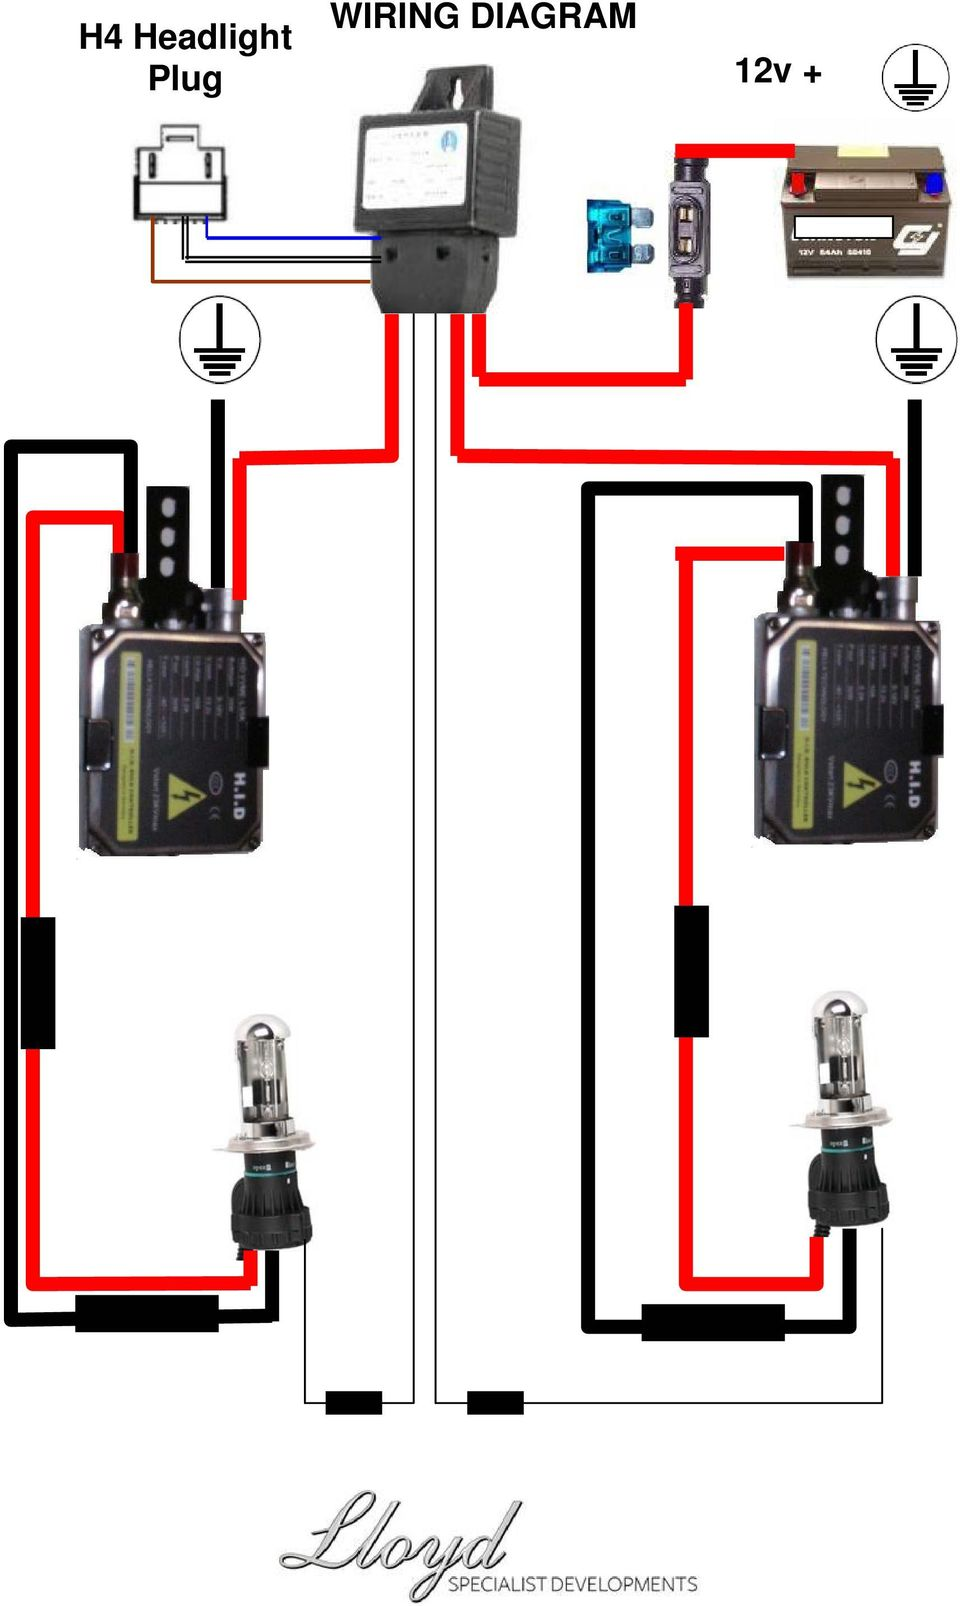 Hid H4 Bi Xenon Fitting Guide Carefully Read The Following Notes Headlight Conversion Wiring Diagram 7 Plug 12v